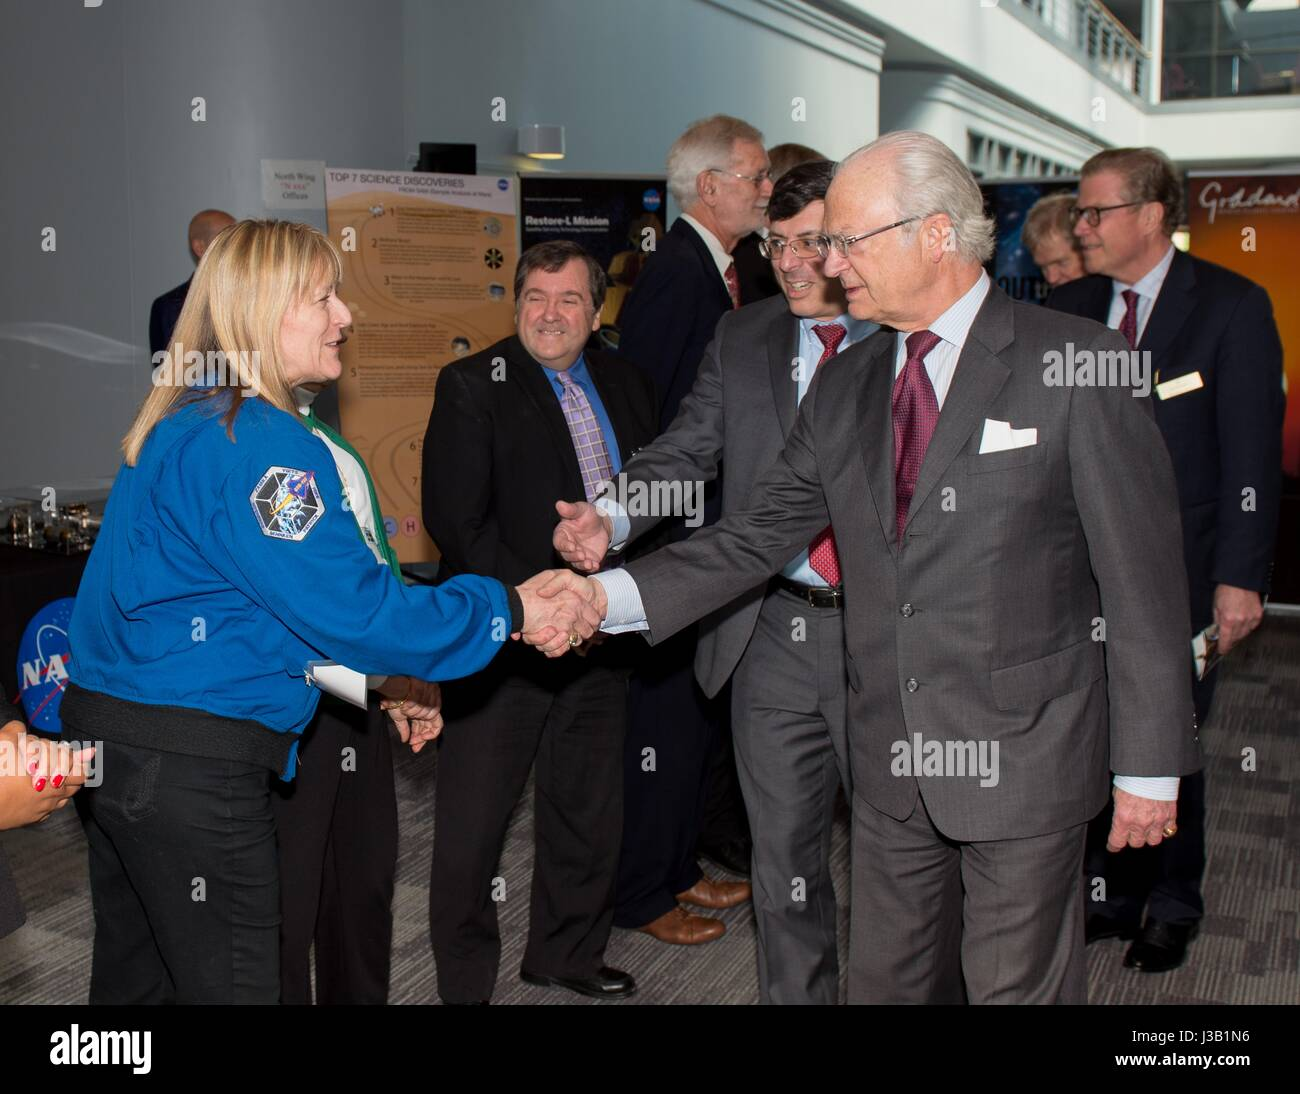 His Majesty The King of Sweden King Carl XVI Gustaf, right, is welcomed by NASA astronaut Kay Hire during a visit - Stock Image